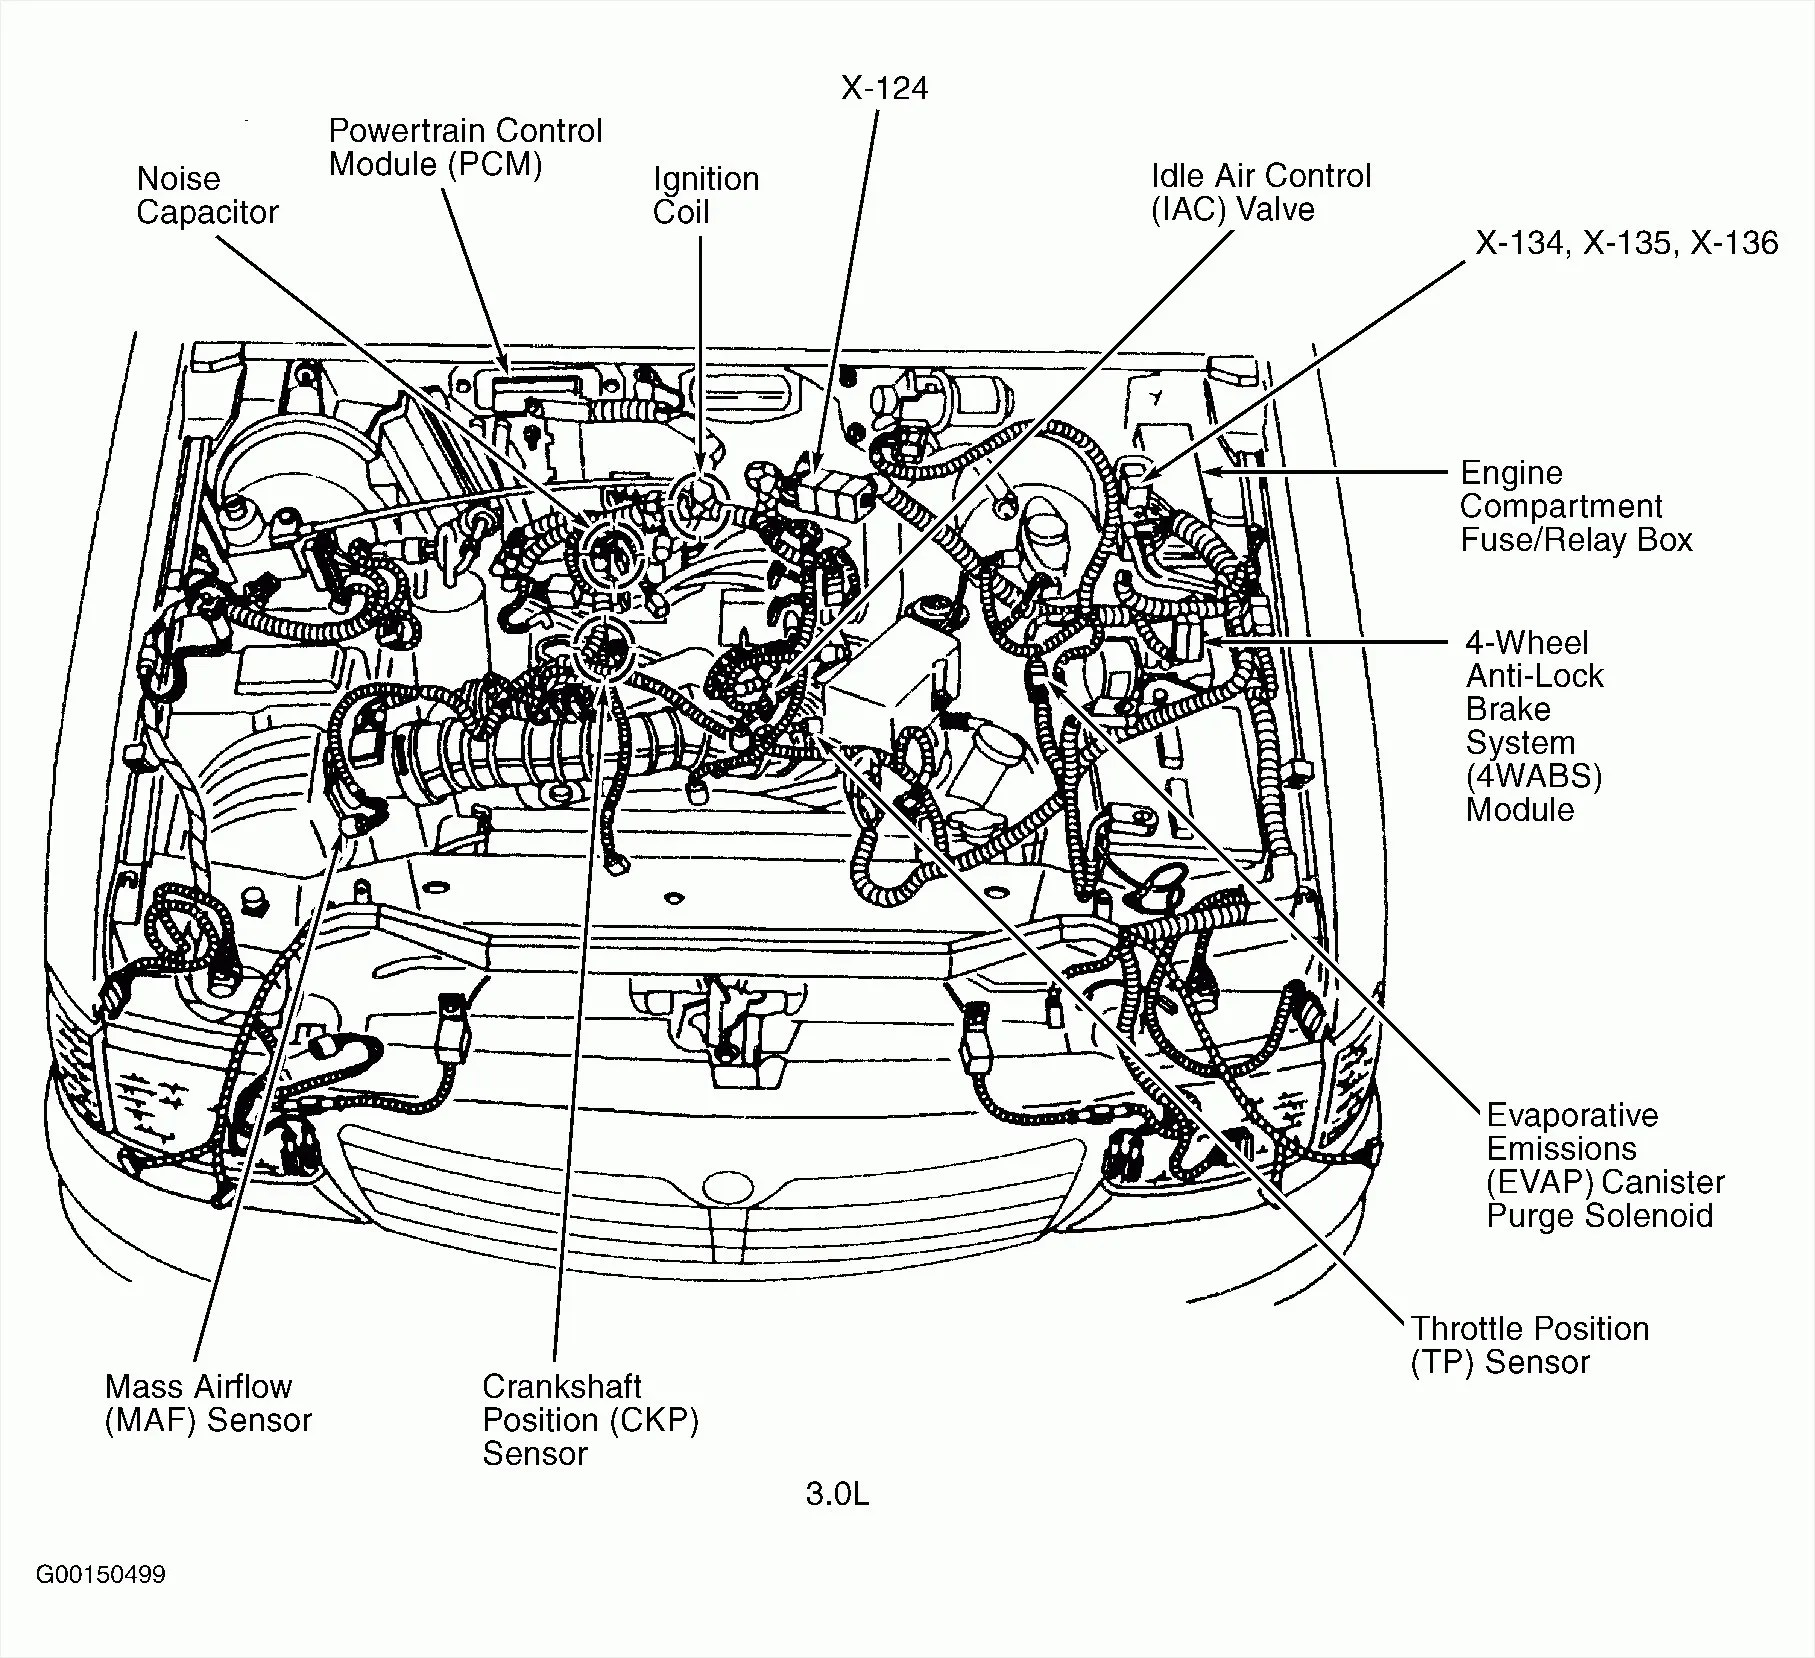 hight resolution of 1996 2 2 subaru engine diagram wiring diagram data name 1996 2 2 subaru engine diagram